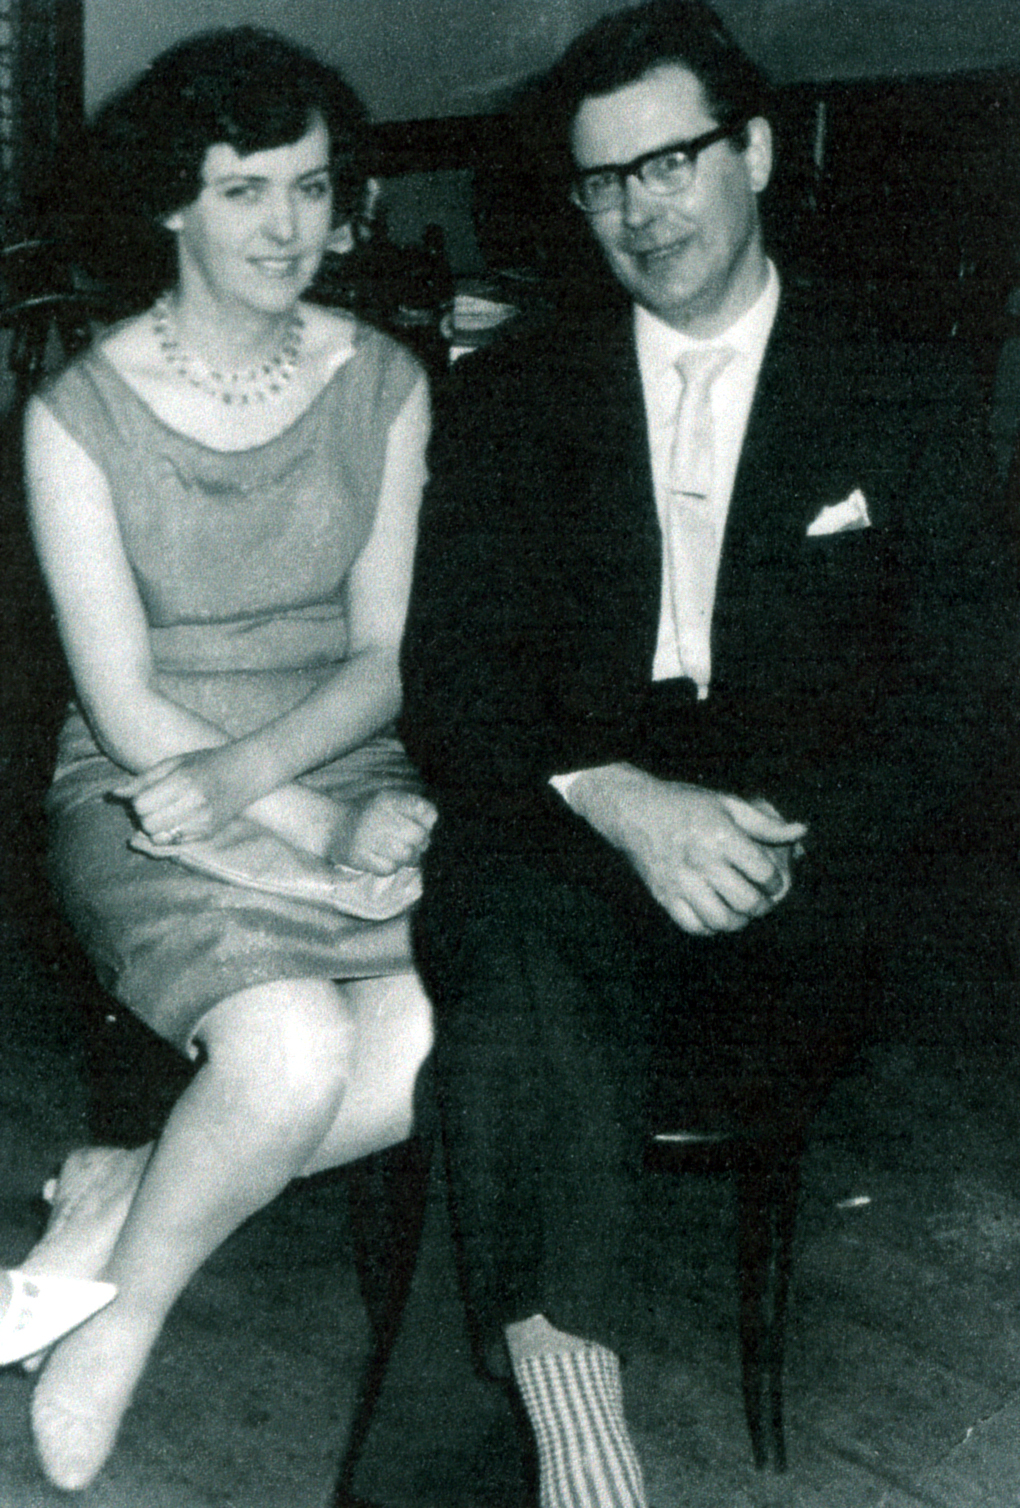 Couple At The Tile Fixers Dance At Westfield Halls, Winter 1964